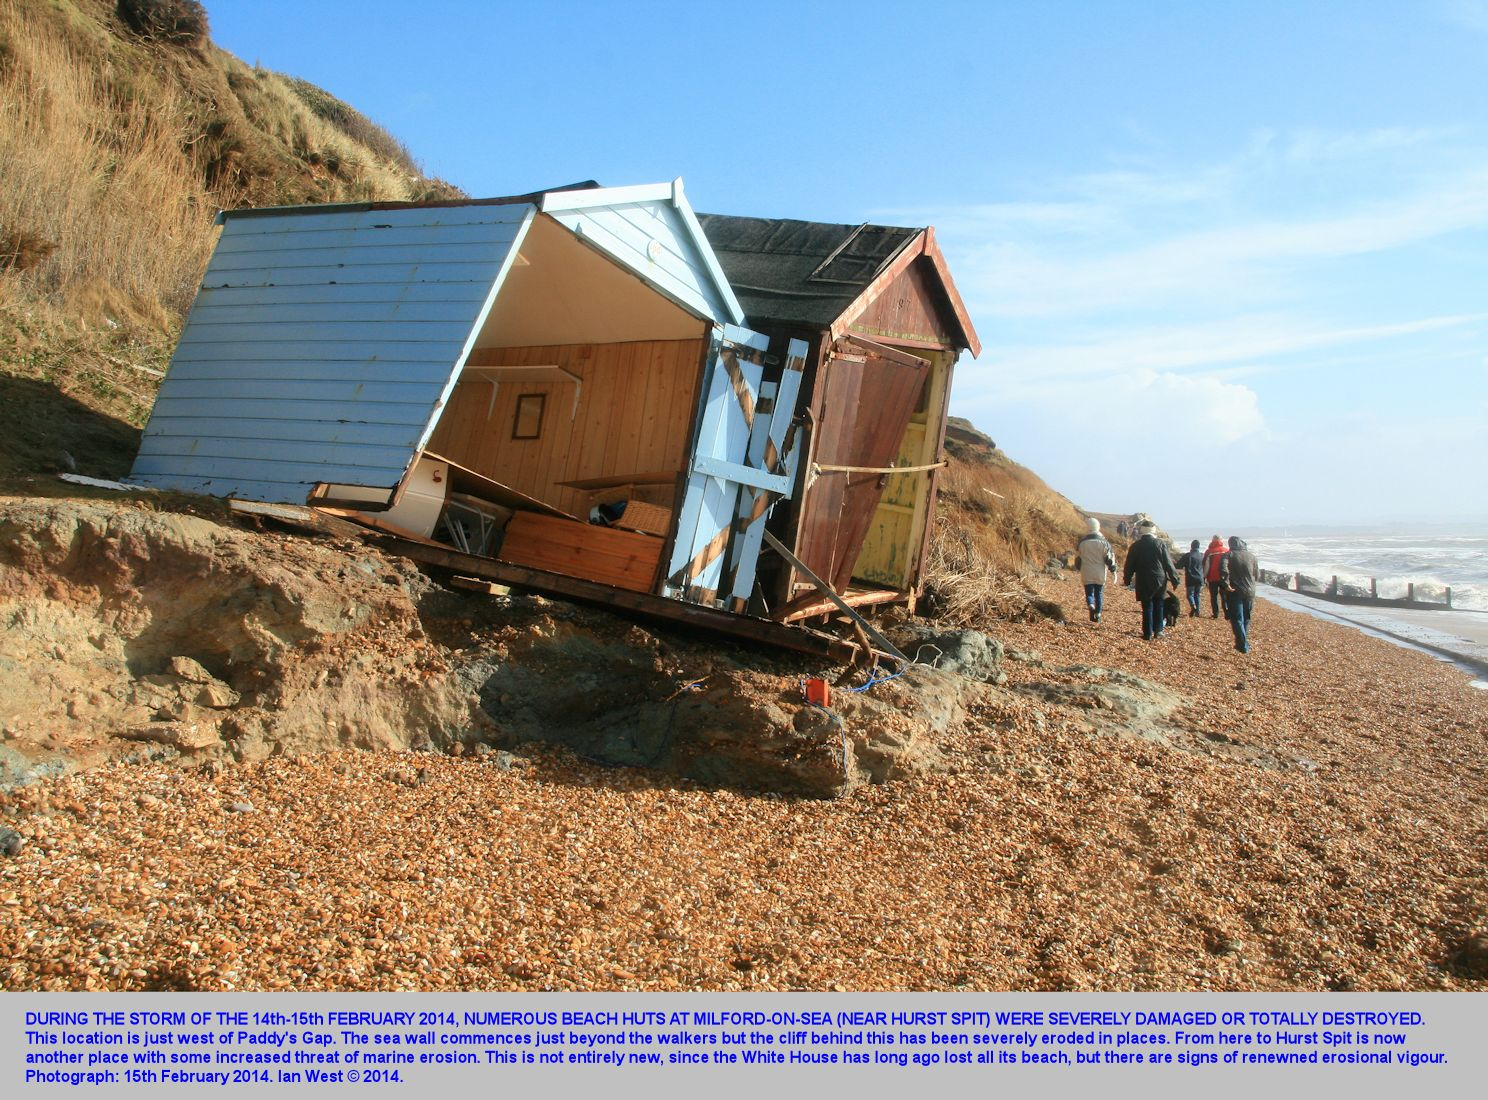 Beach huts at Paddy's Gap, west, Milford-on-Sea, near Hurst Spit, Hampshire, damaged by storm action on the 14th-15th February 2014